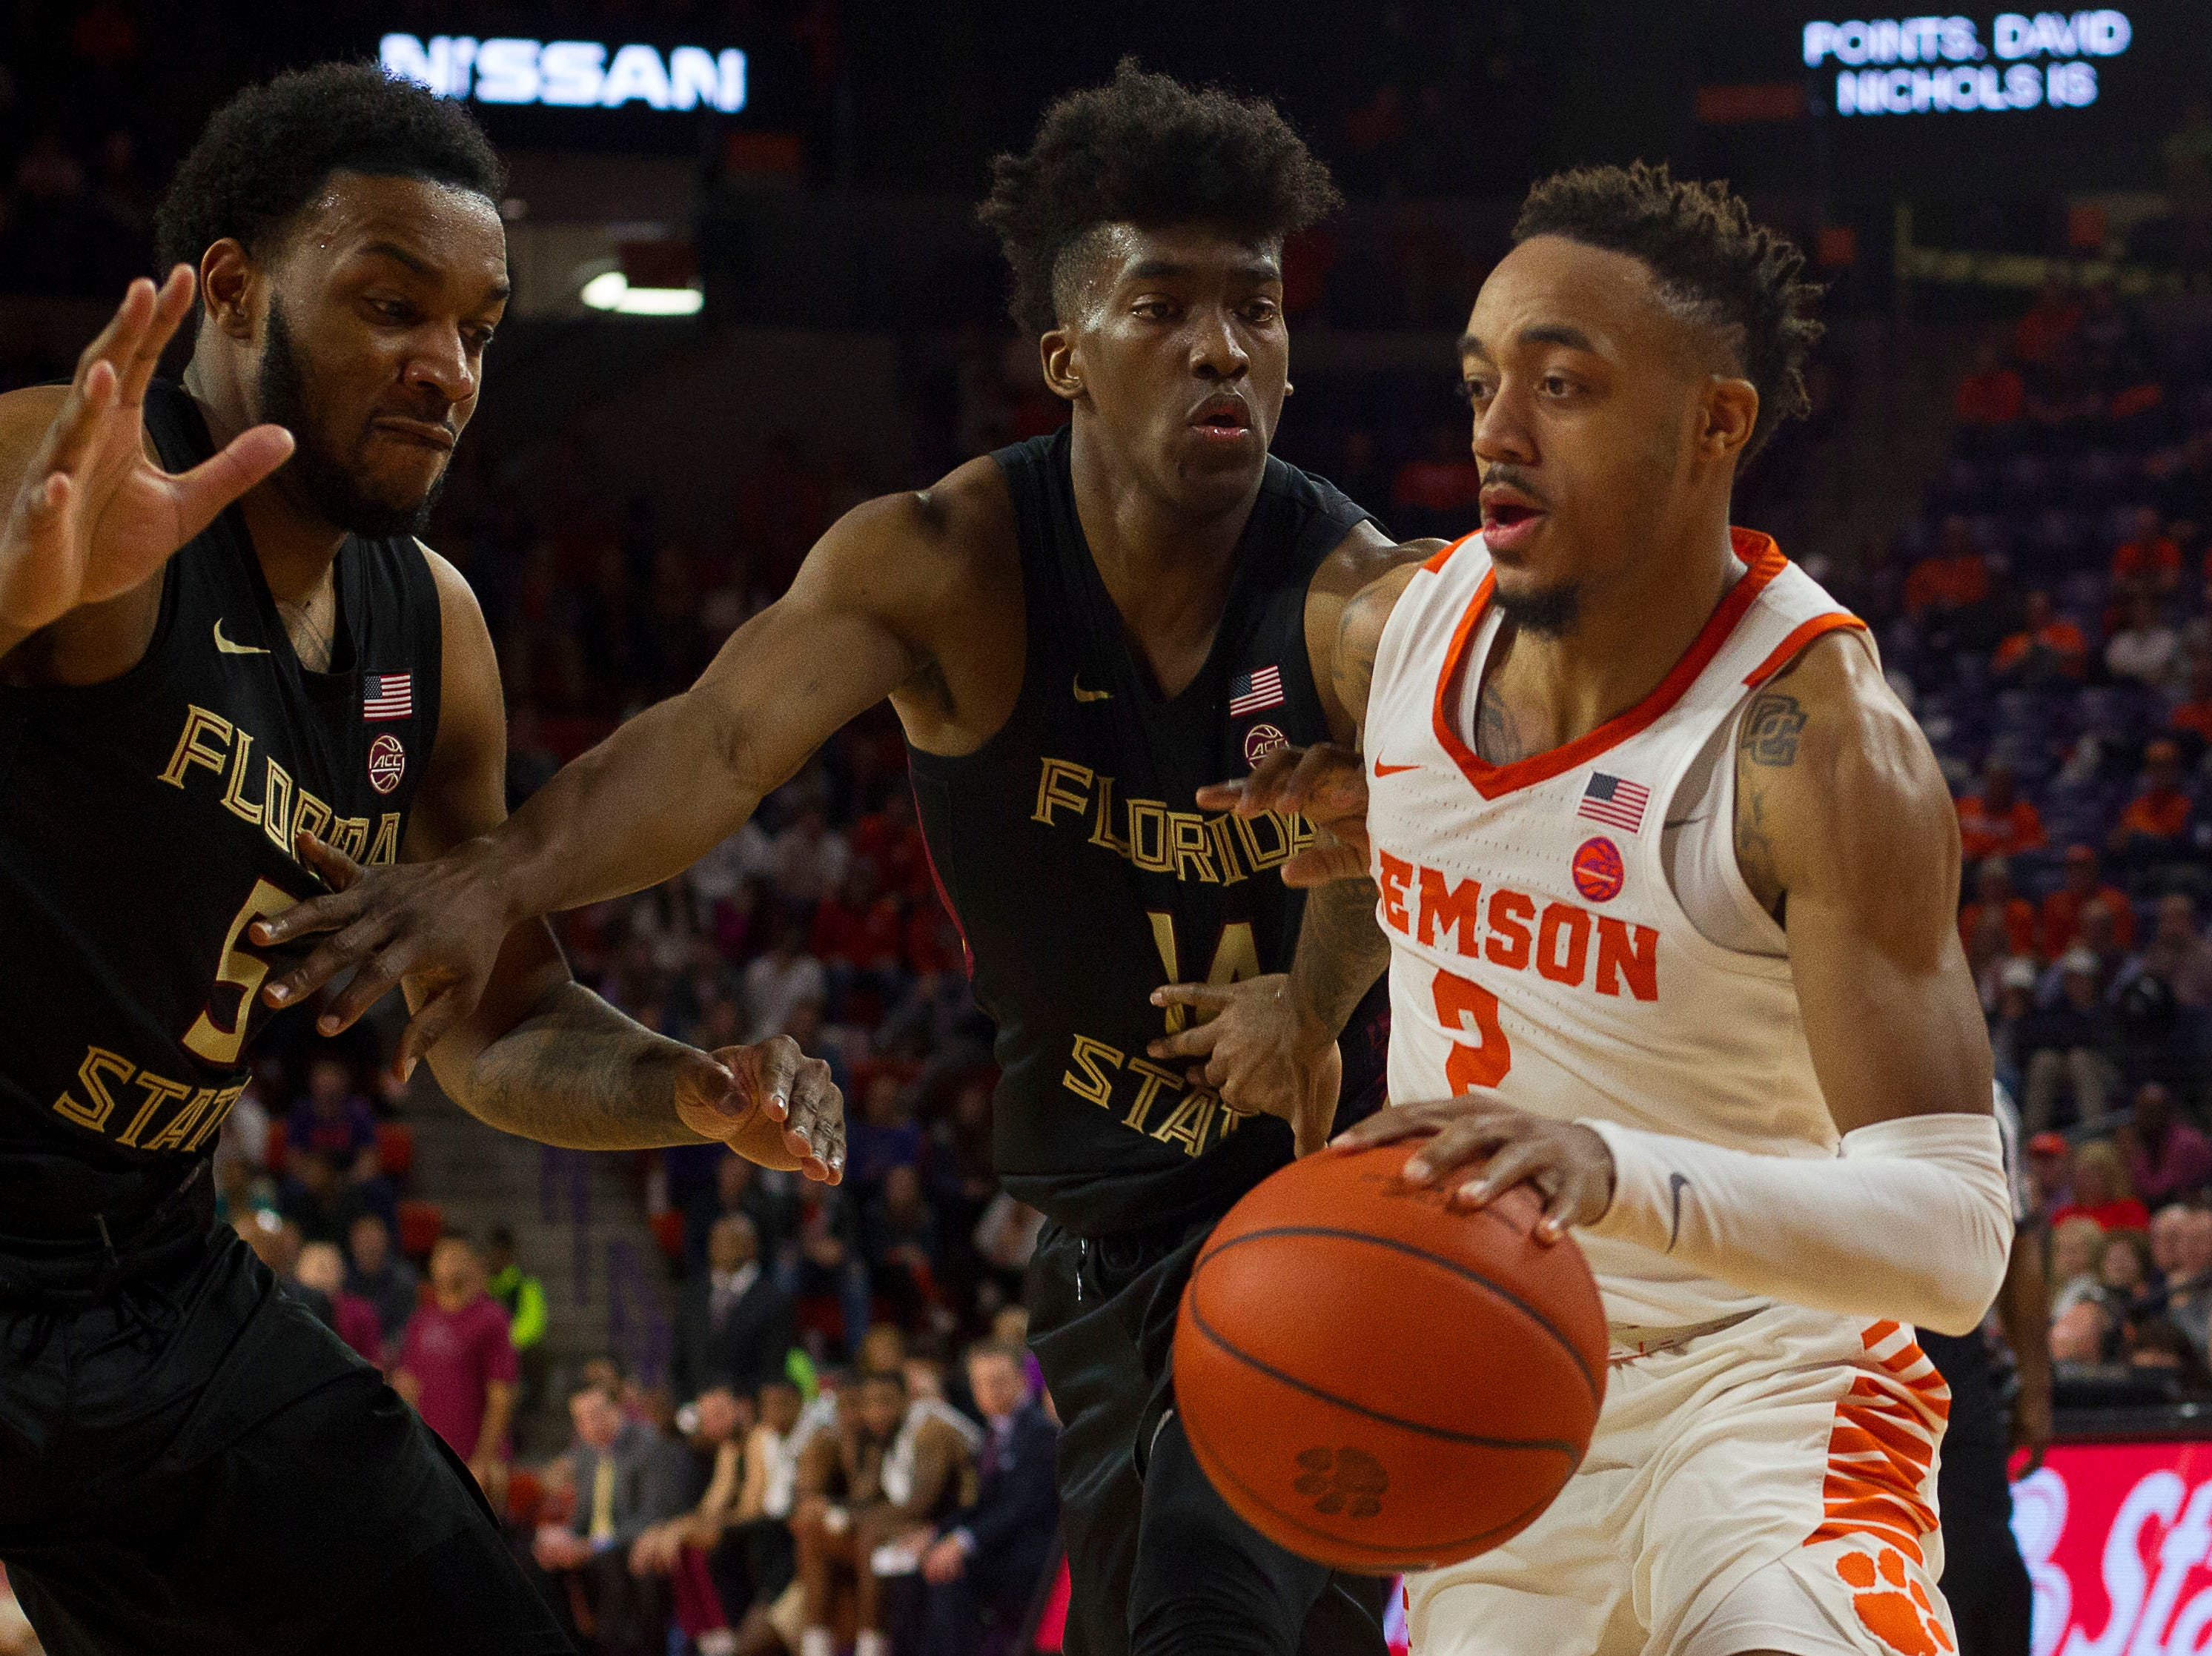 Feb 19, 2019; Clemson, SC, USA; Clemson Tigers guard Marcquise Reed (2) attempts to drive to the basket while being defended by Florida State Seminoles guard Terance Mann (14) during the second half at Littlejohn Coliseum. Seminoles won 77-64. Mandatory Credit: Joshua S. Kelly-USA TODAY Sports